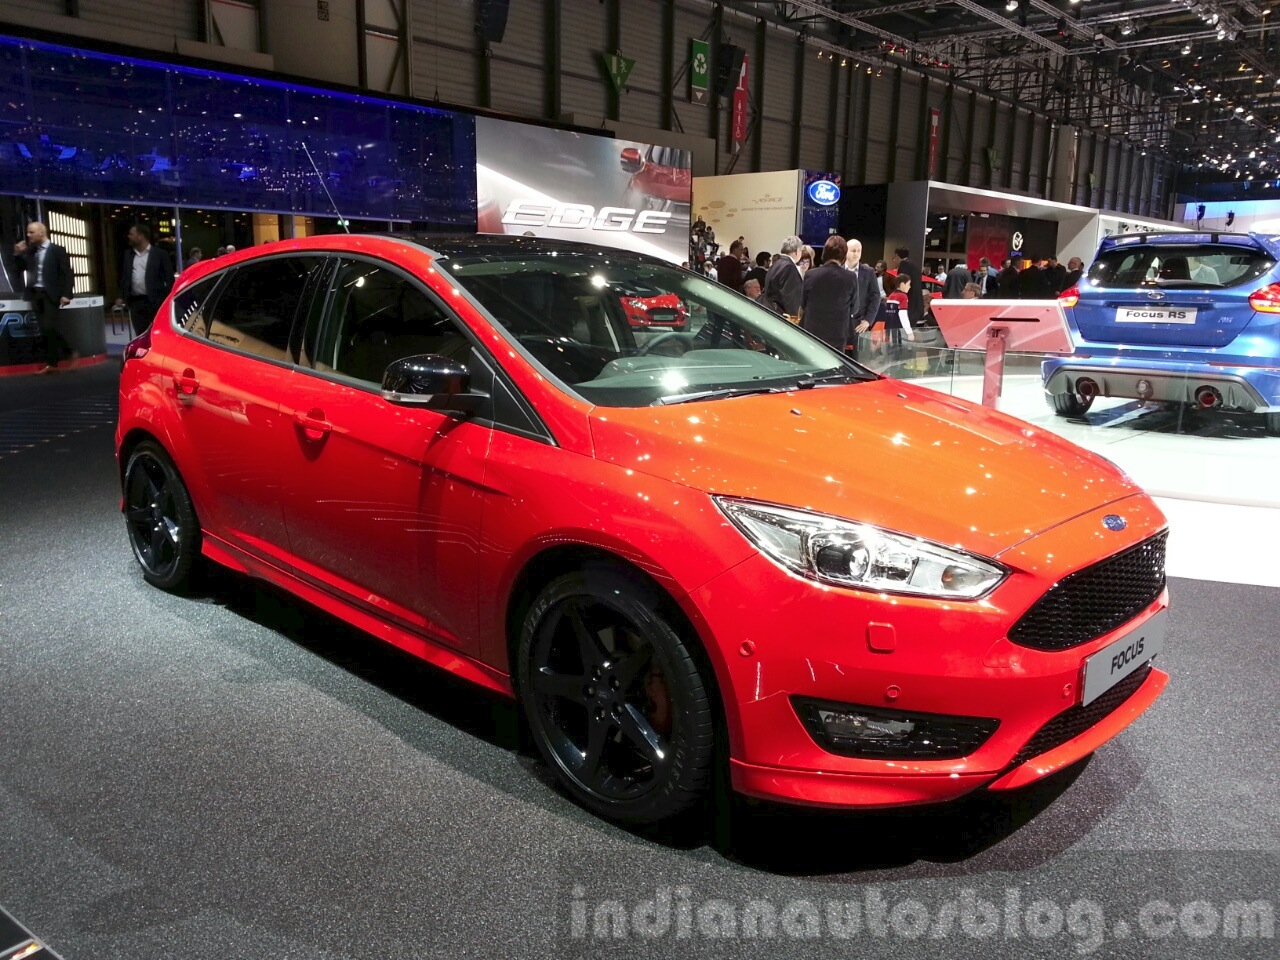 Ford Focus Red And Black Editions 2015 Geneva Live